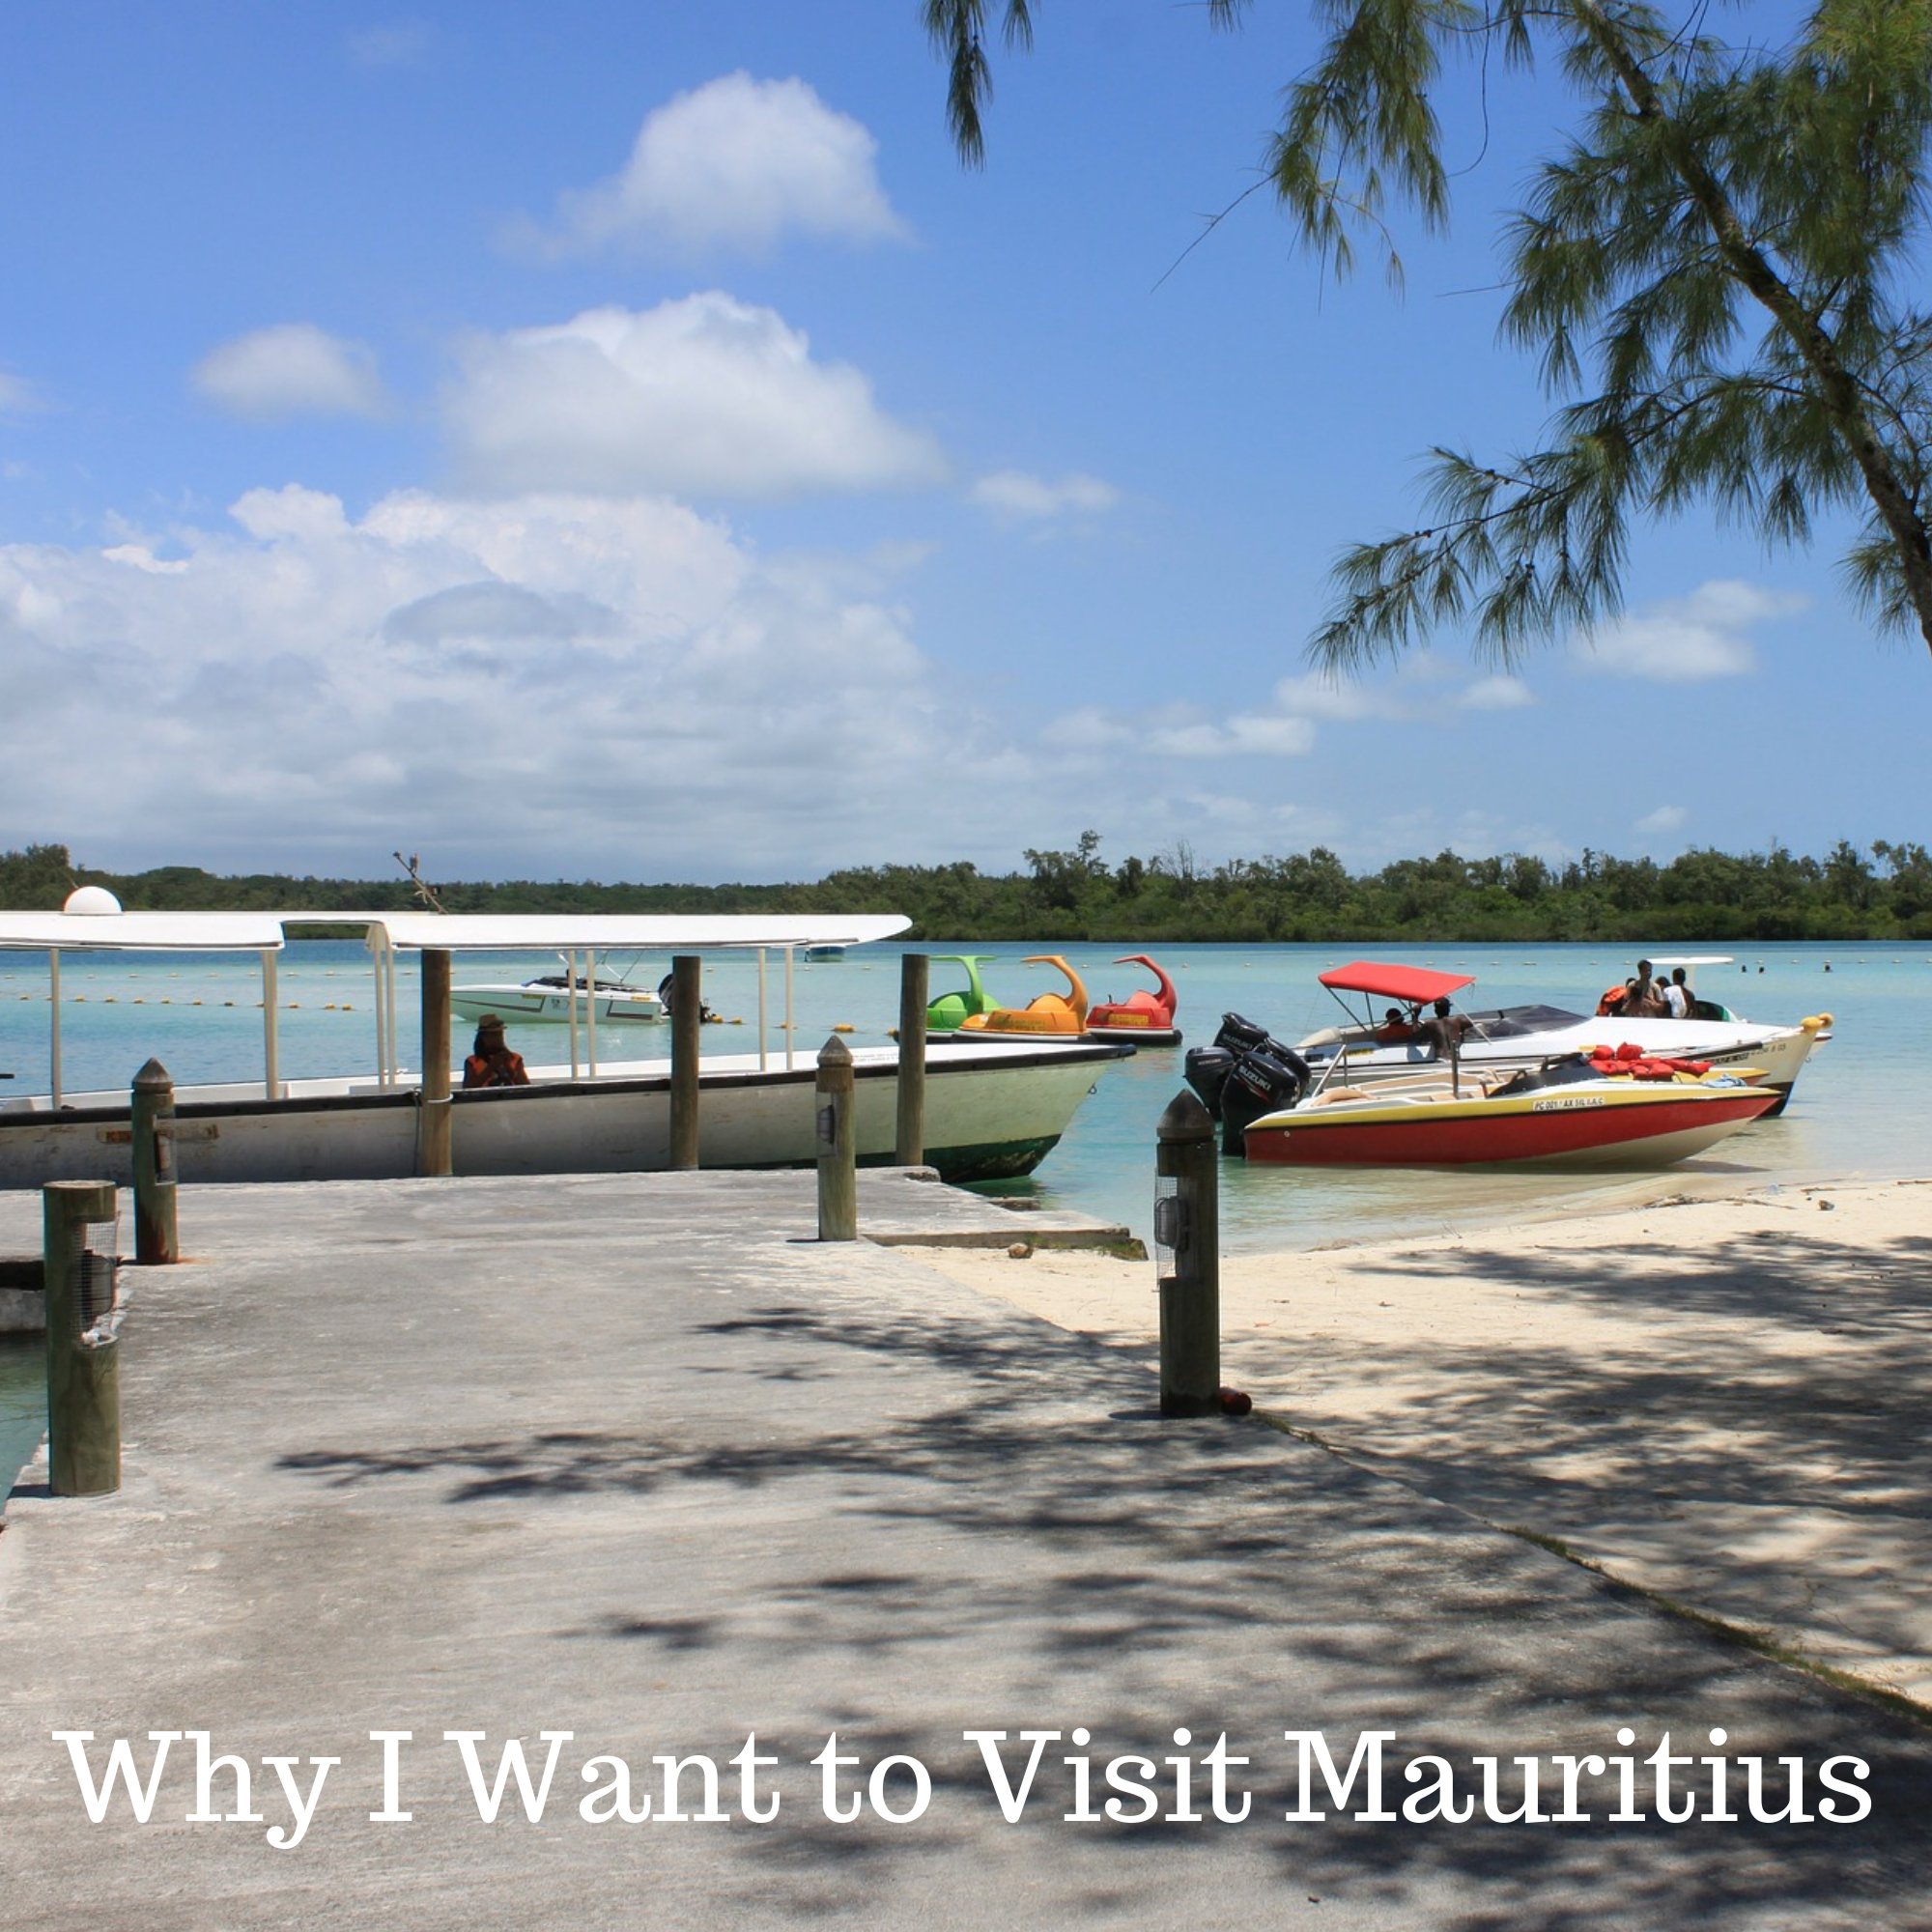 Why I Want to Visit Mauritius